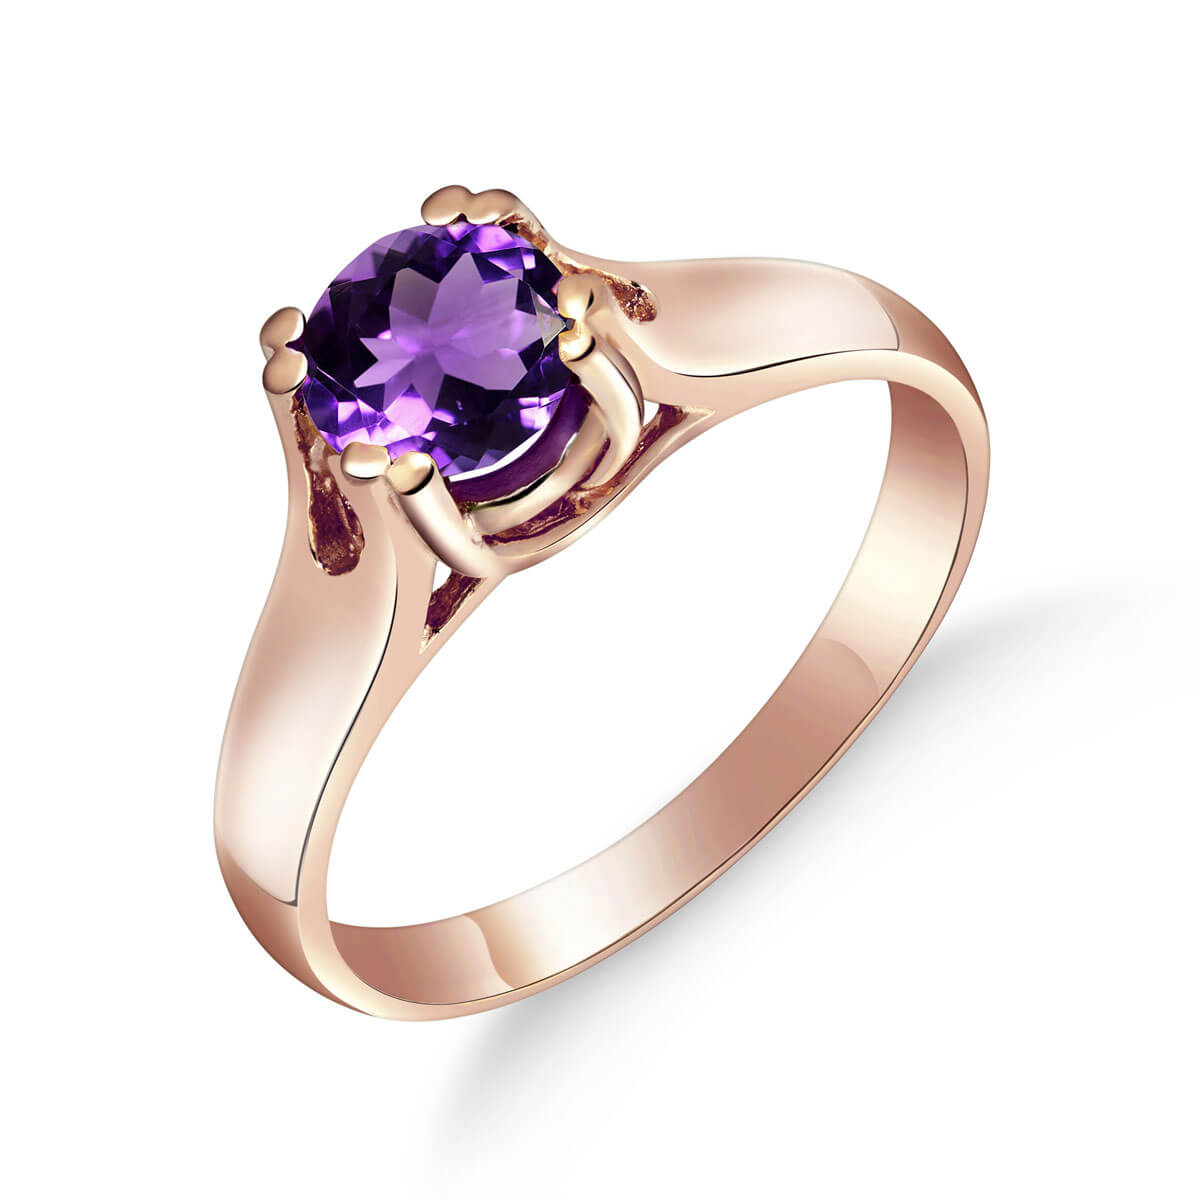 Amethyst Solitaire Ring 1.1 ct in 18ct Rose Gold